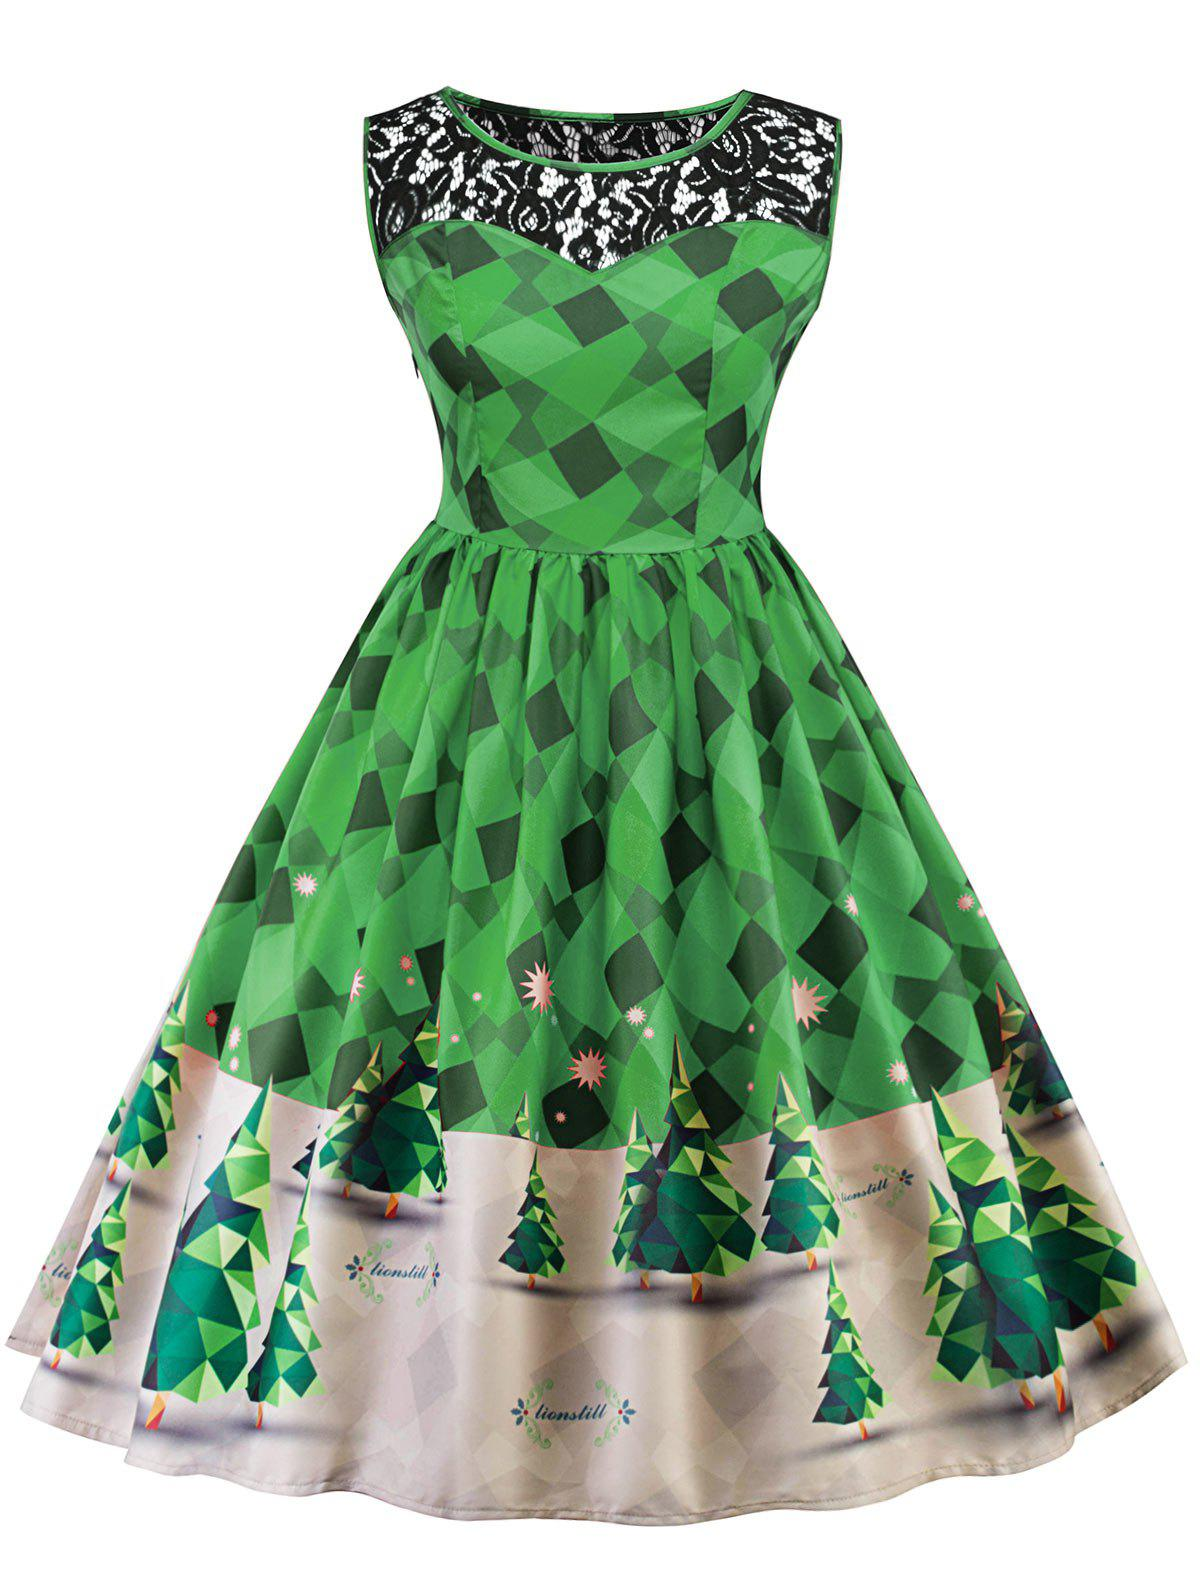 Vintage Lace Insert Christmas Pin Up Skater Dress vintage color block floral pin up skater dress